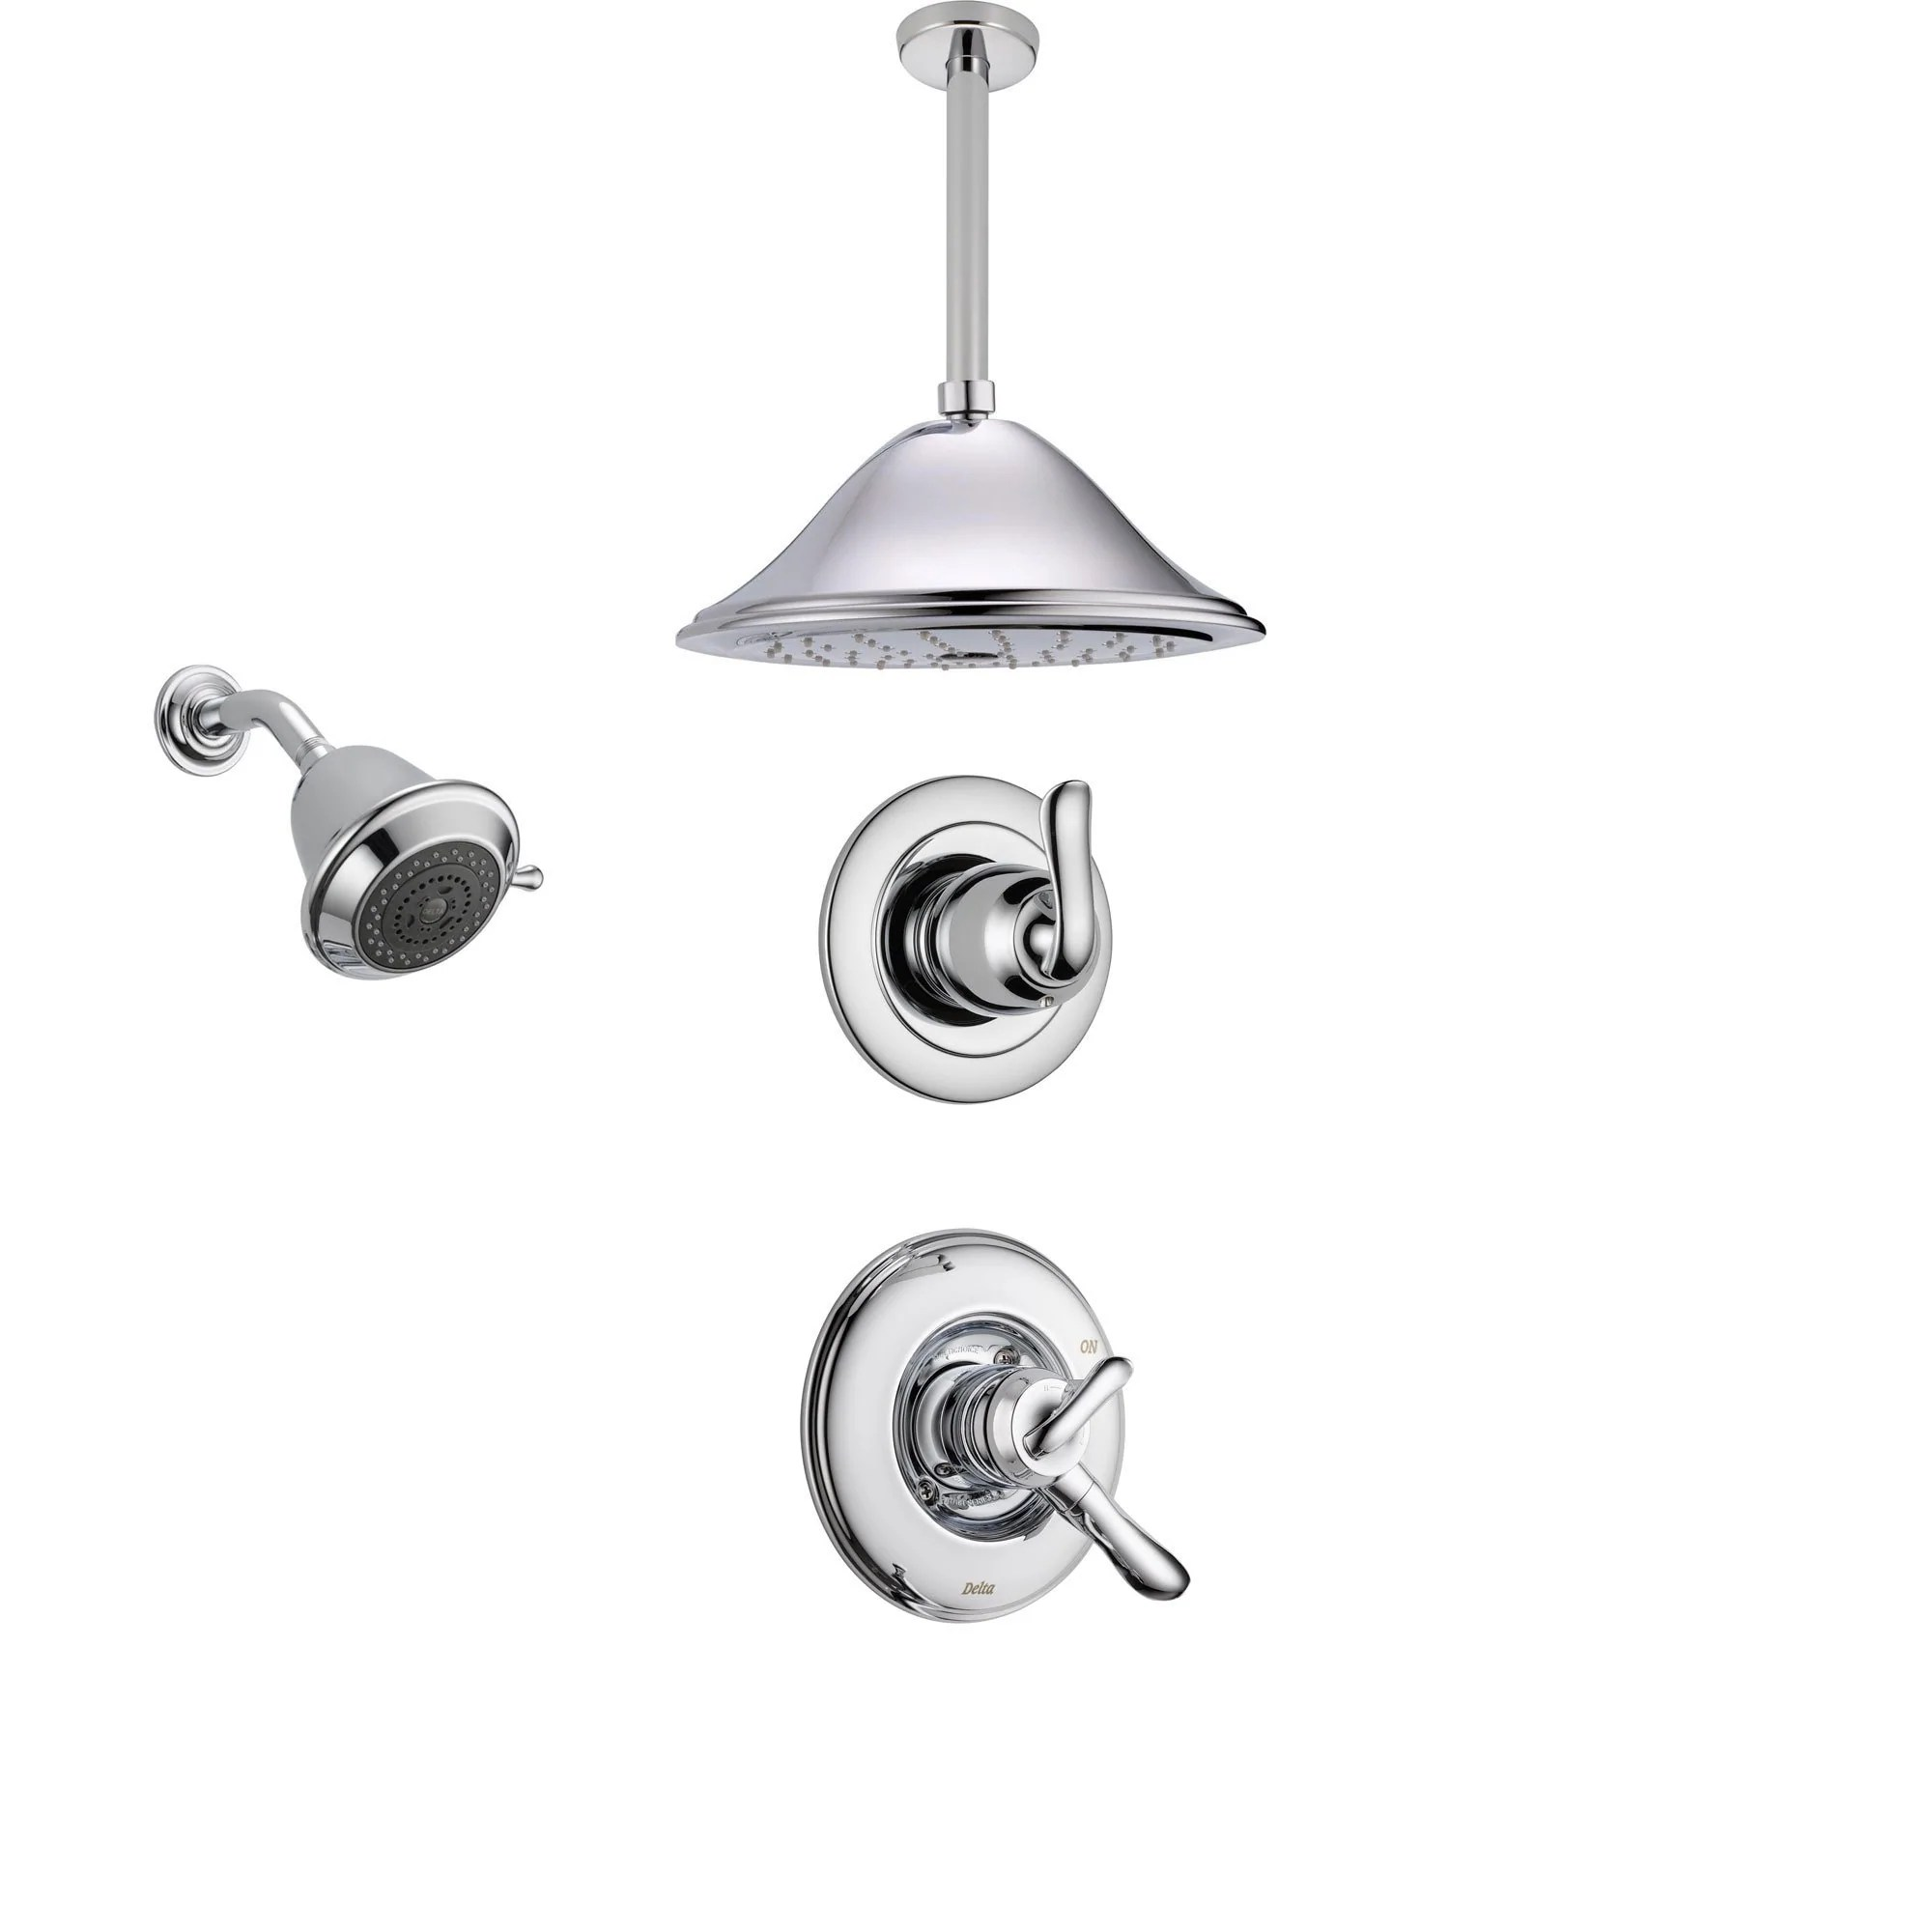 Delta Linden Chrome Shower System With Dual Control Shower Handle 3 Setting Diverter Large Ceiling Mount Rain Shower Head And Wall Mount Showerhead